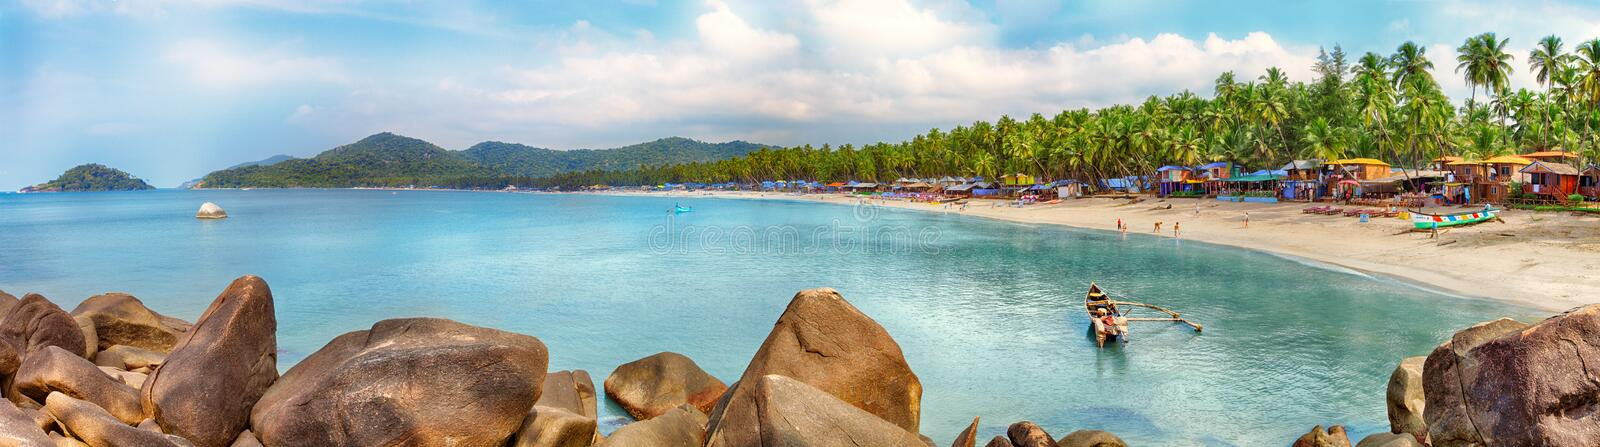 Goa beach panorama, Palolem, India. Beautiful Goa province beach in India with fishing boats and stones in the sea royalty free stock photos